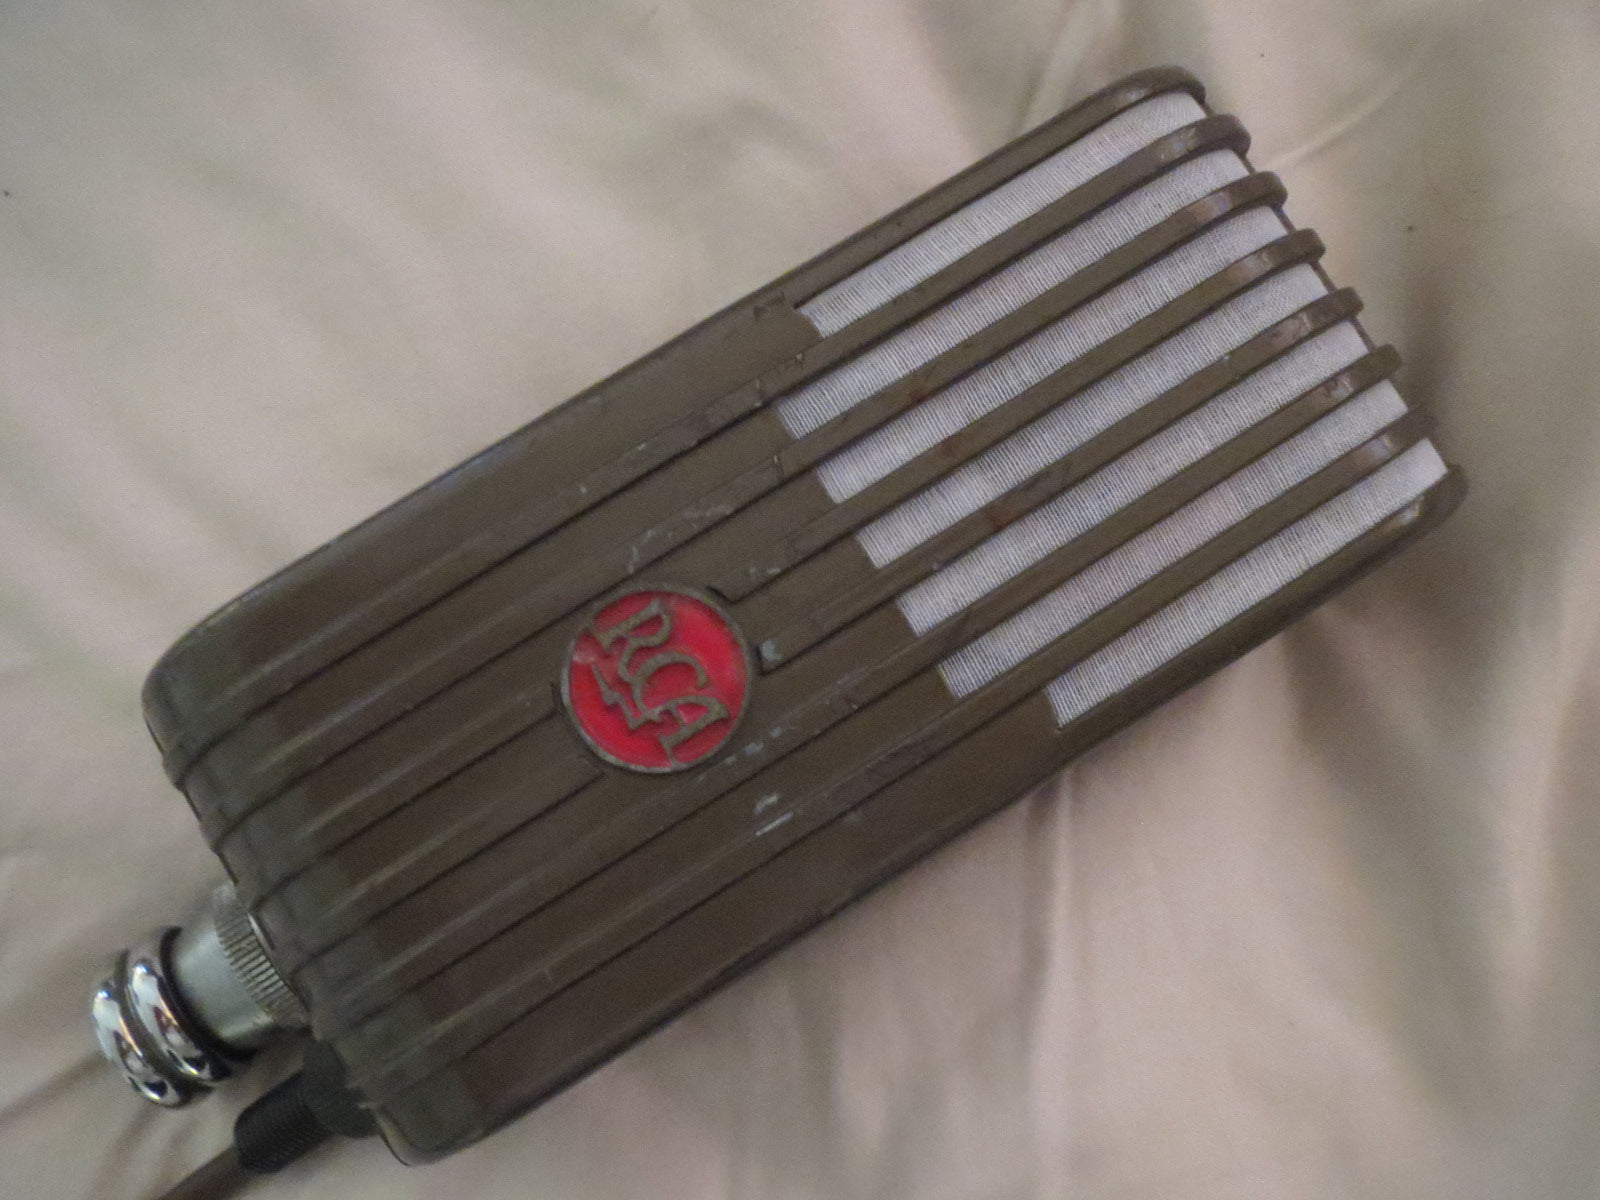 RCA MI-6203 VARACOUSTIC RIBBON MICROPHONE RESTORED BY STEPHEN SANK, W/SWIVEL MT